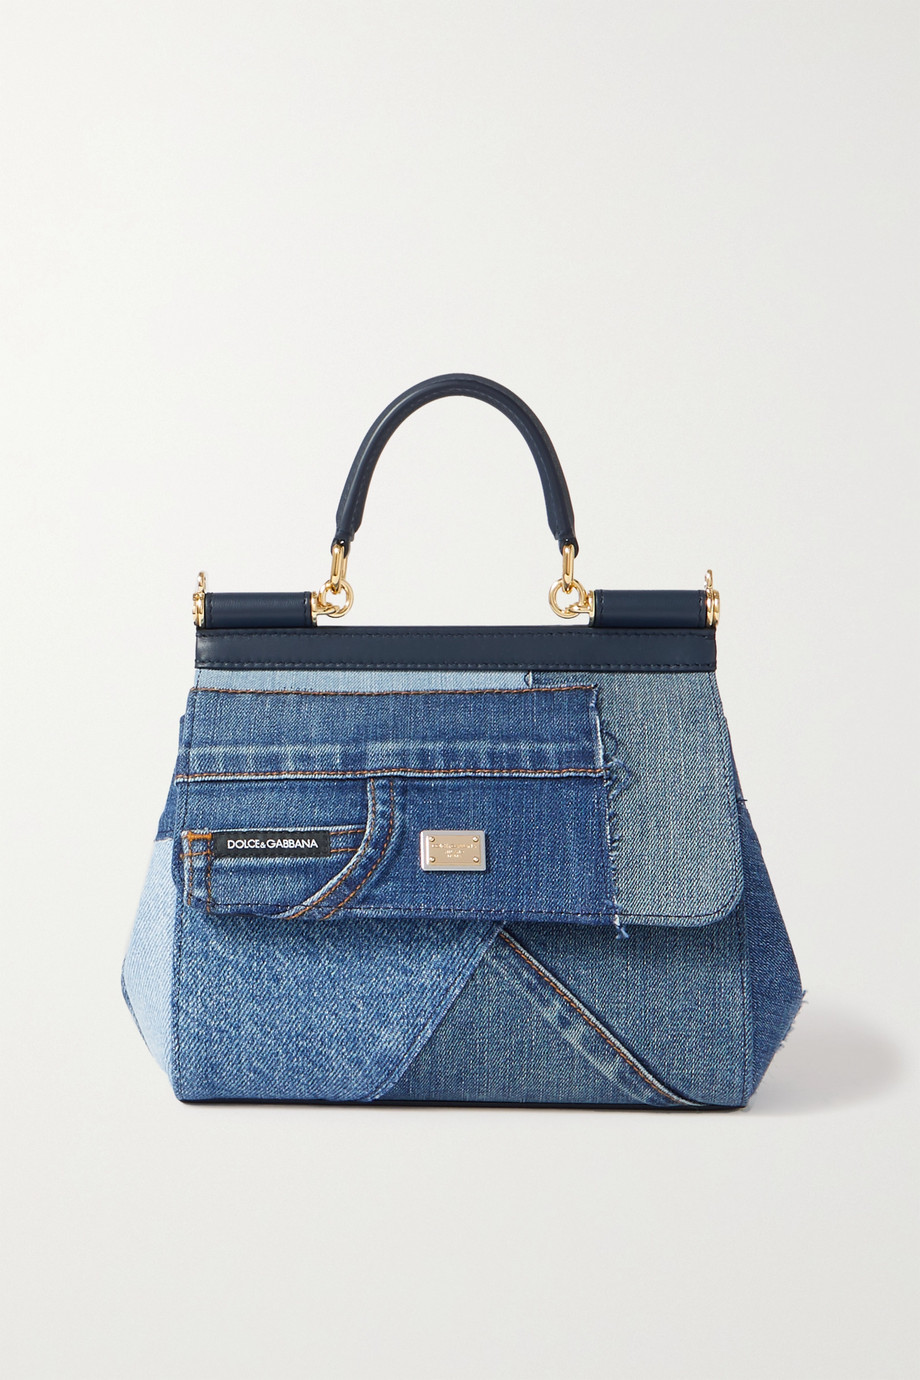 Dolce & Gabbana Sicily leather-trimmed patchwork denim tote